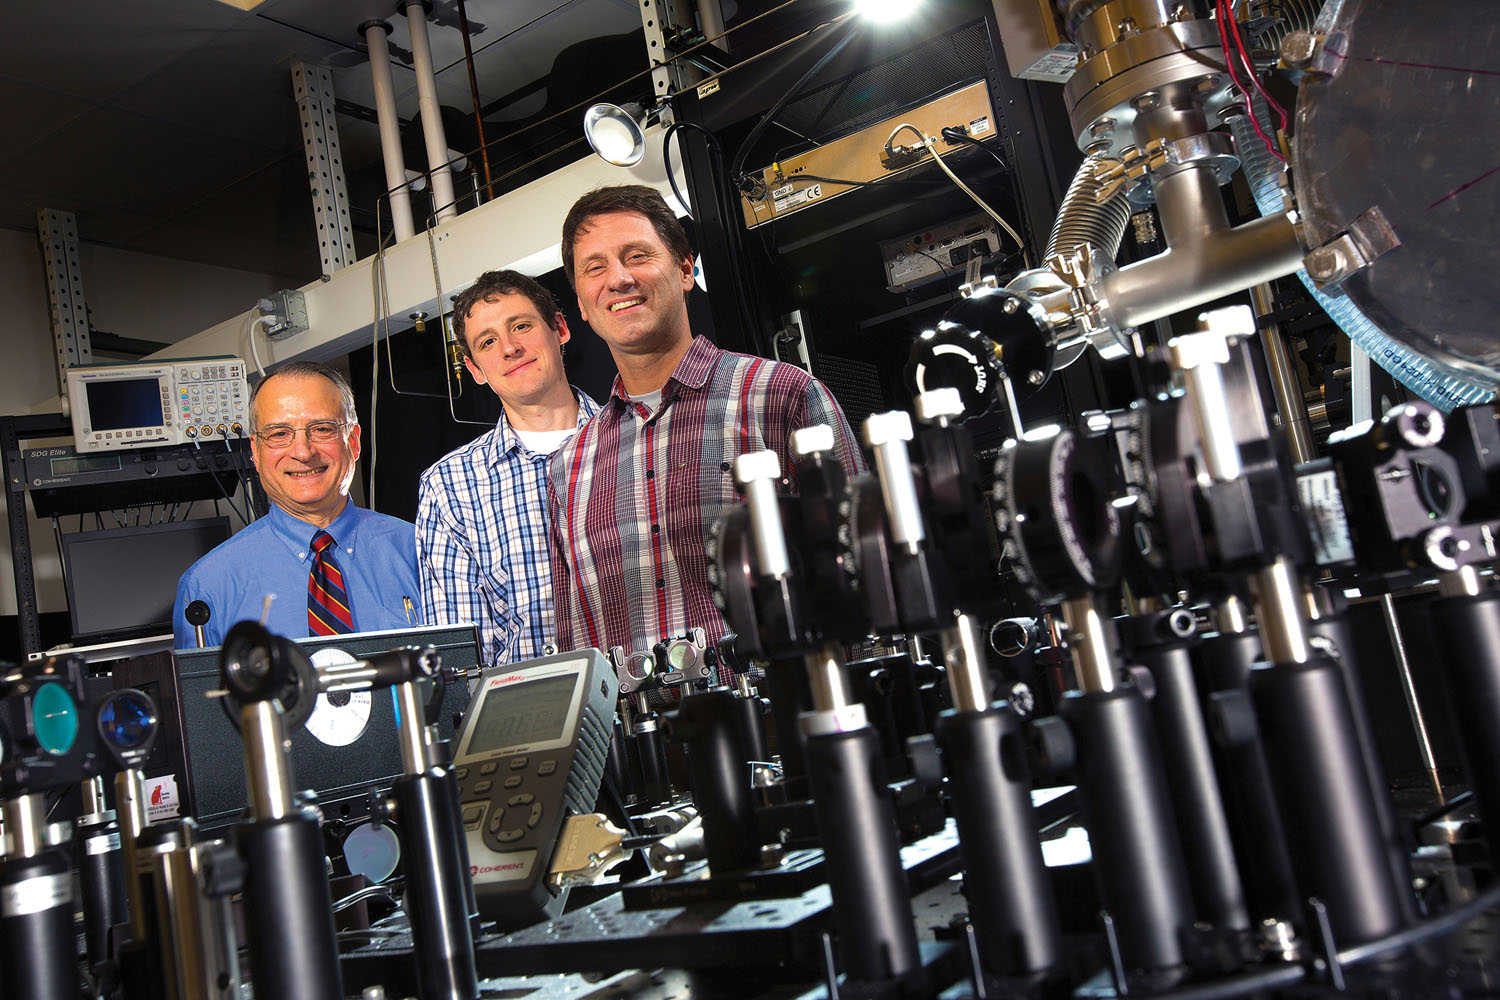 Anthony Starace, Martin Centurion and Herman Batelaan lead UNL's consortium participation collaborating with colleagues at Kansas State University and the University of Kansas on the Nebraska-Kansas Consortium. The partnership seeks to expand all three universities' capacity to study atomic, molecular and optical physics. February 11, 2015. Photo by Craig Chandler / University Communications.